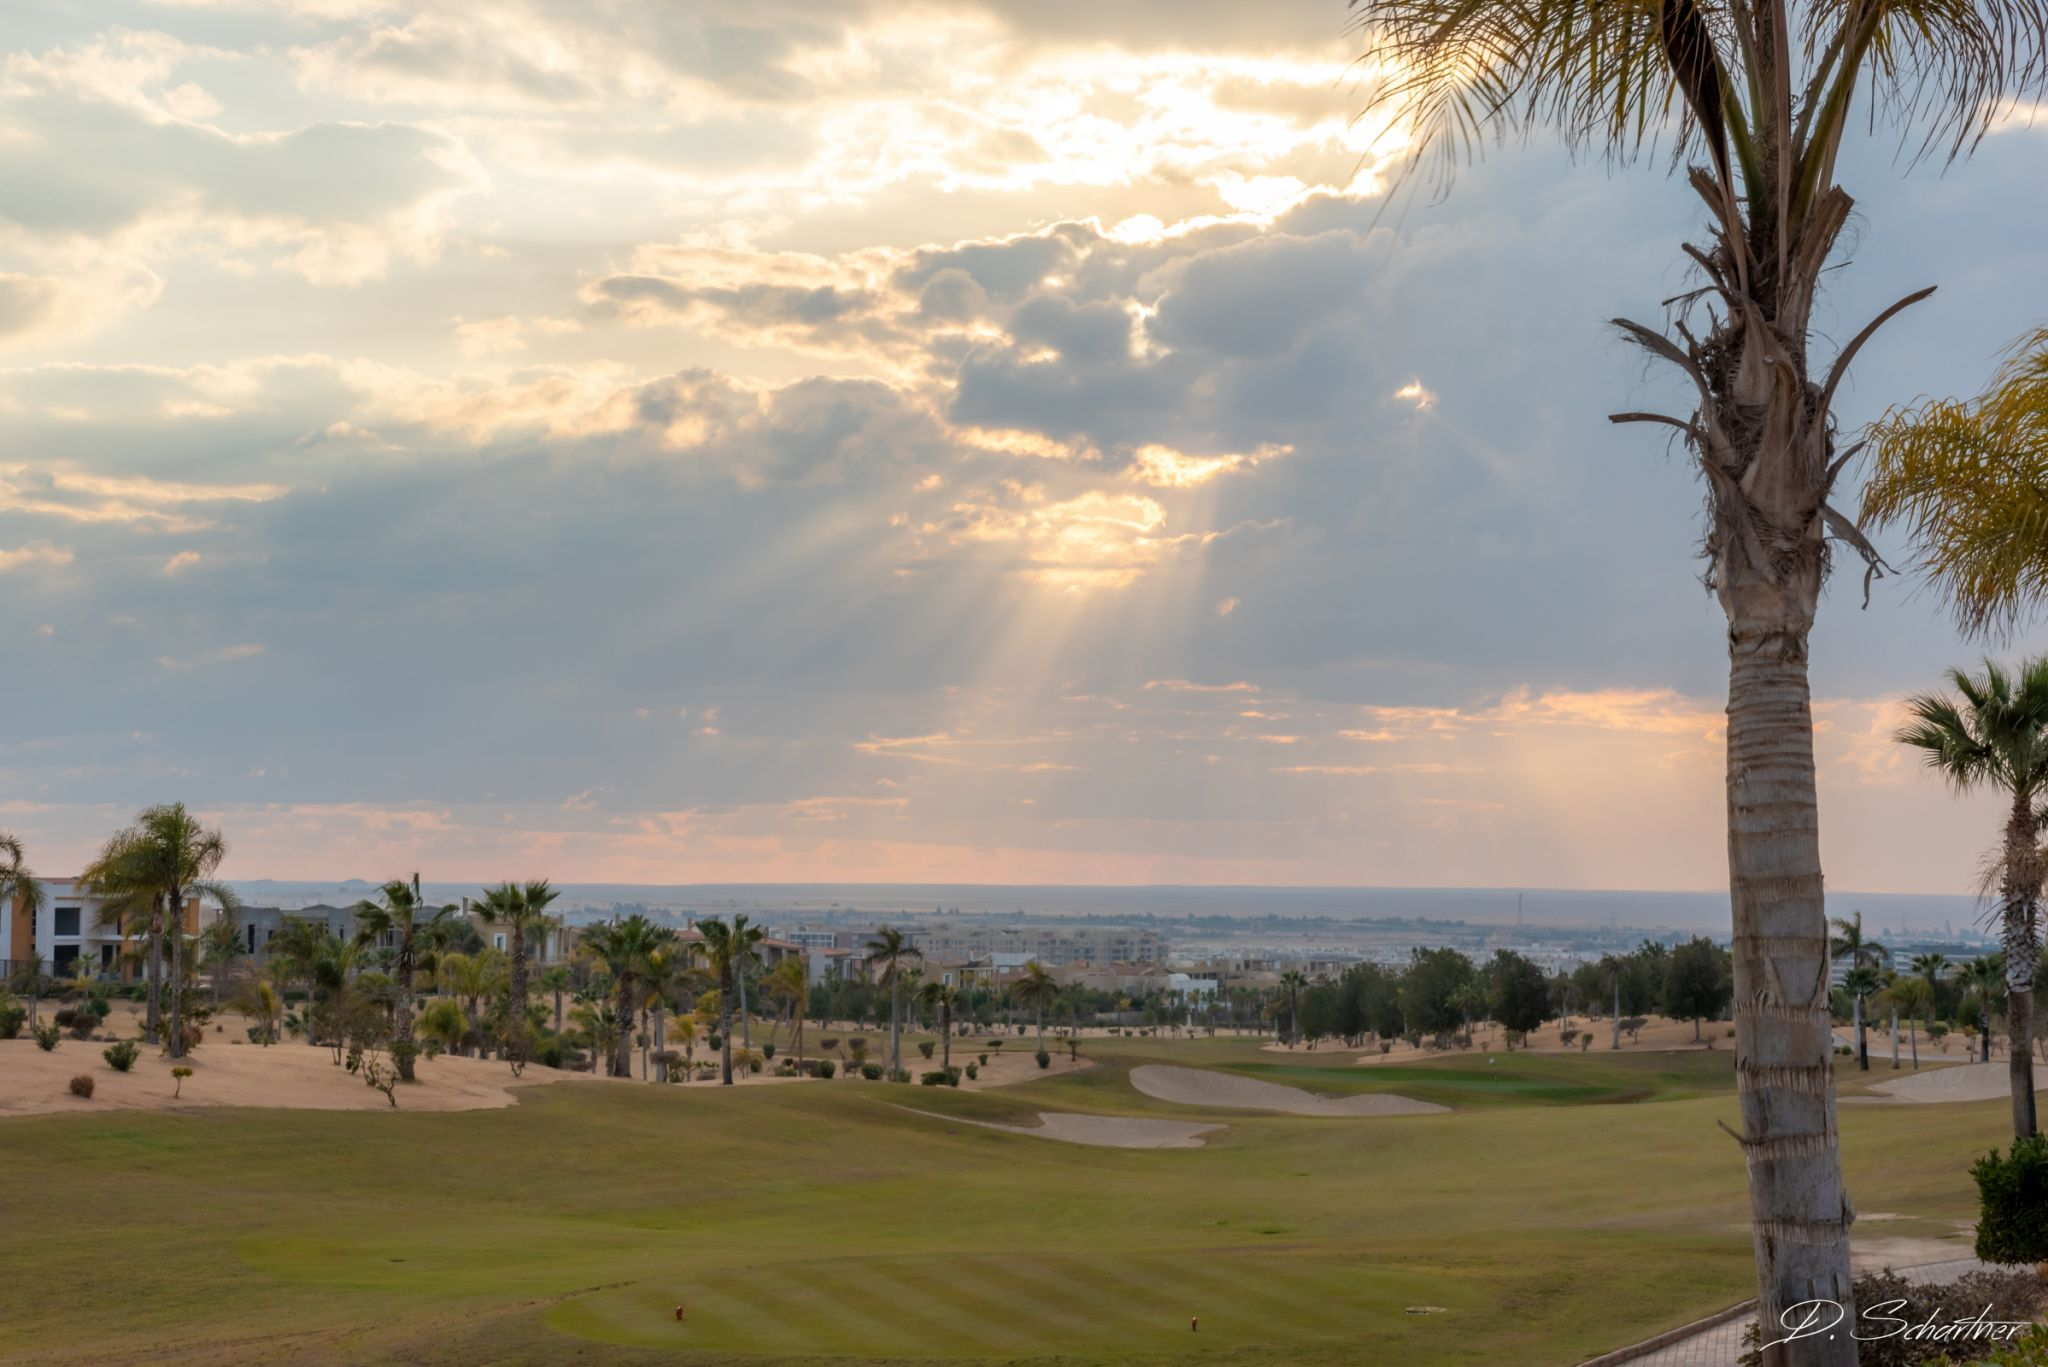 Golf course in Sheikh Zayed City, Egypt